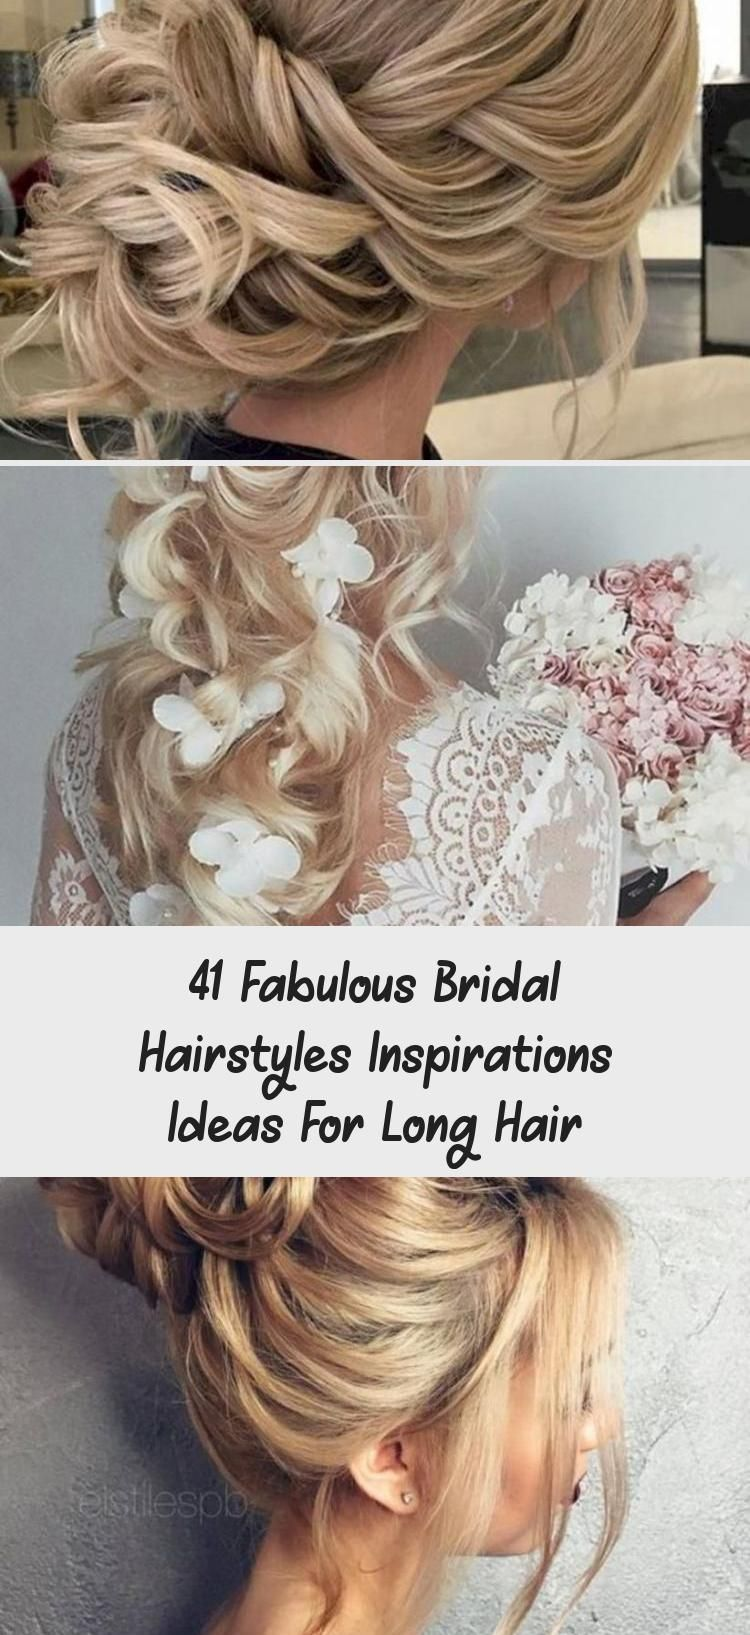 #beauty #style #fashion #hair #makeup #skincare #nails #health #fitness #exercise #bridesmaidhairFis...